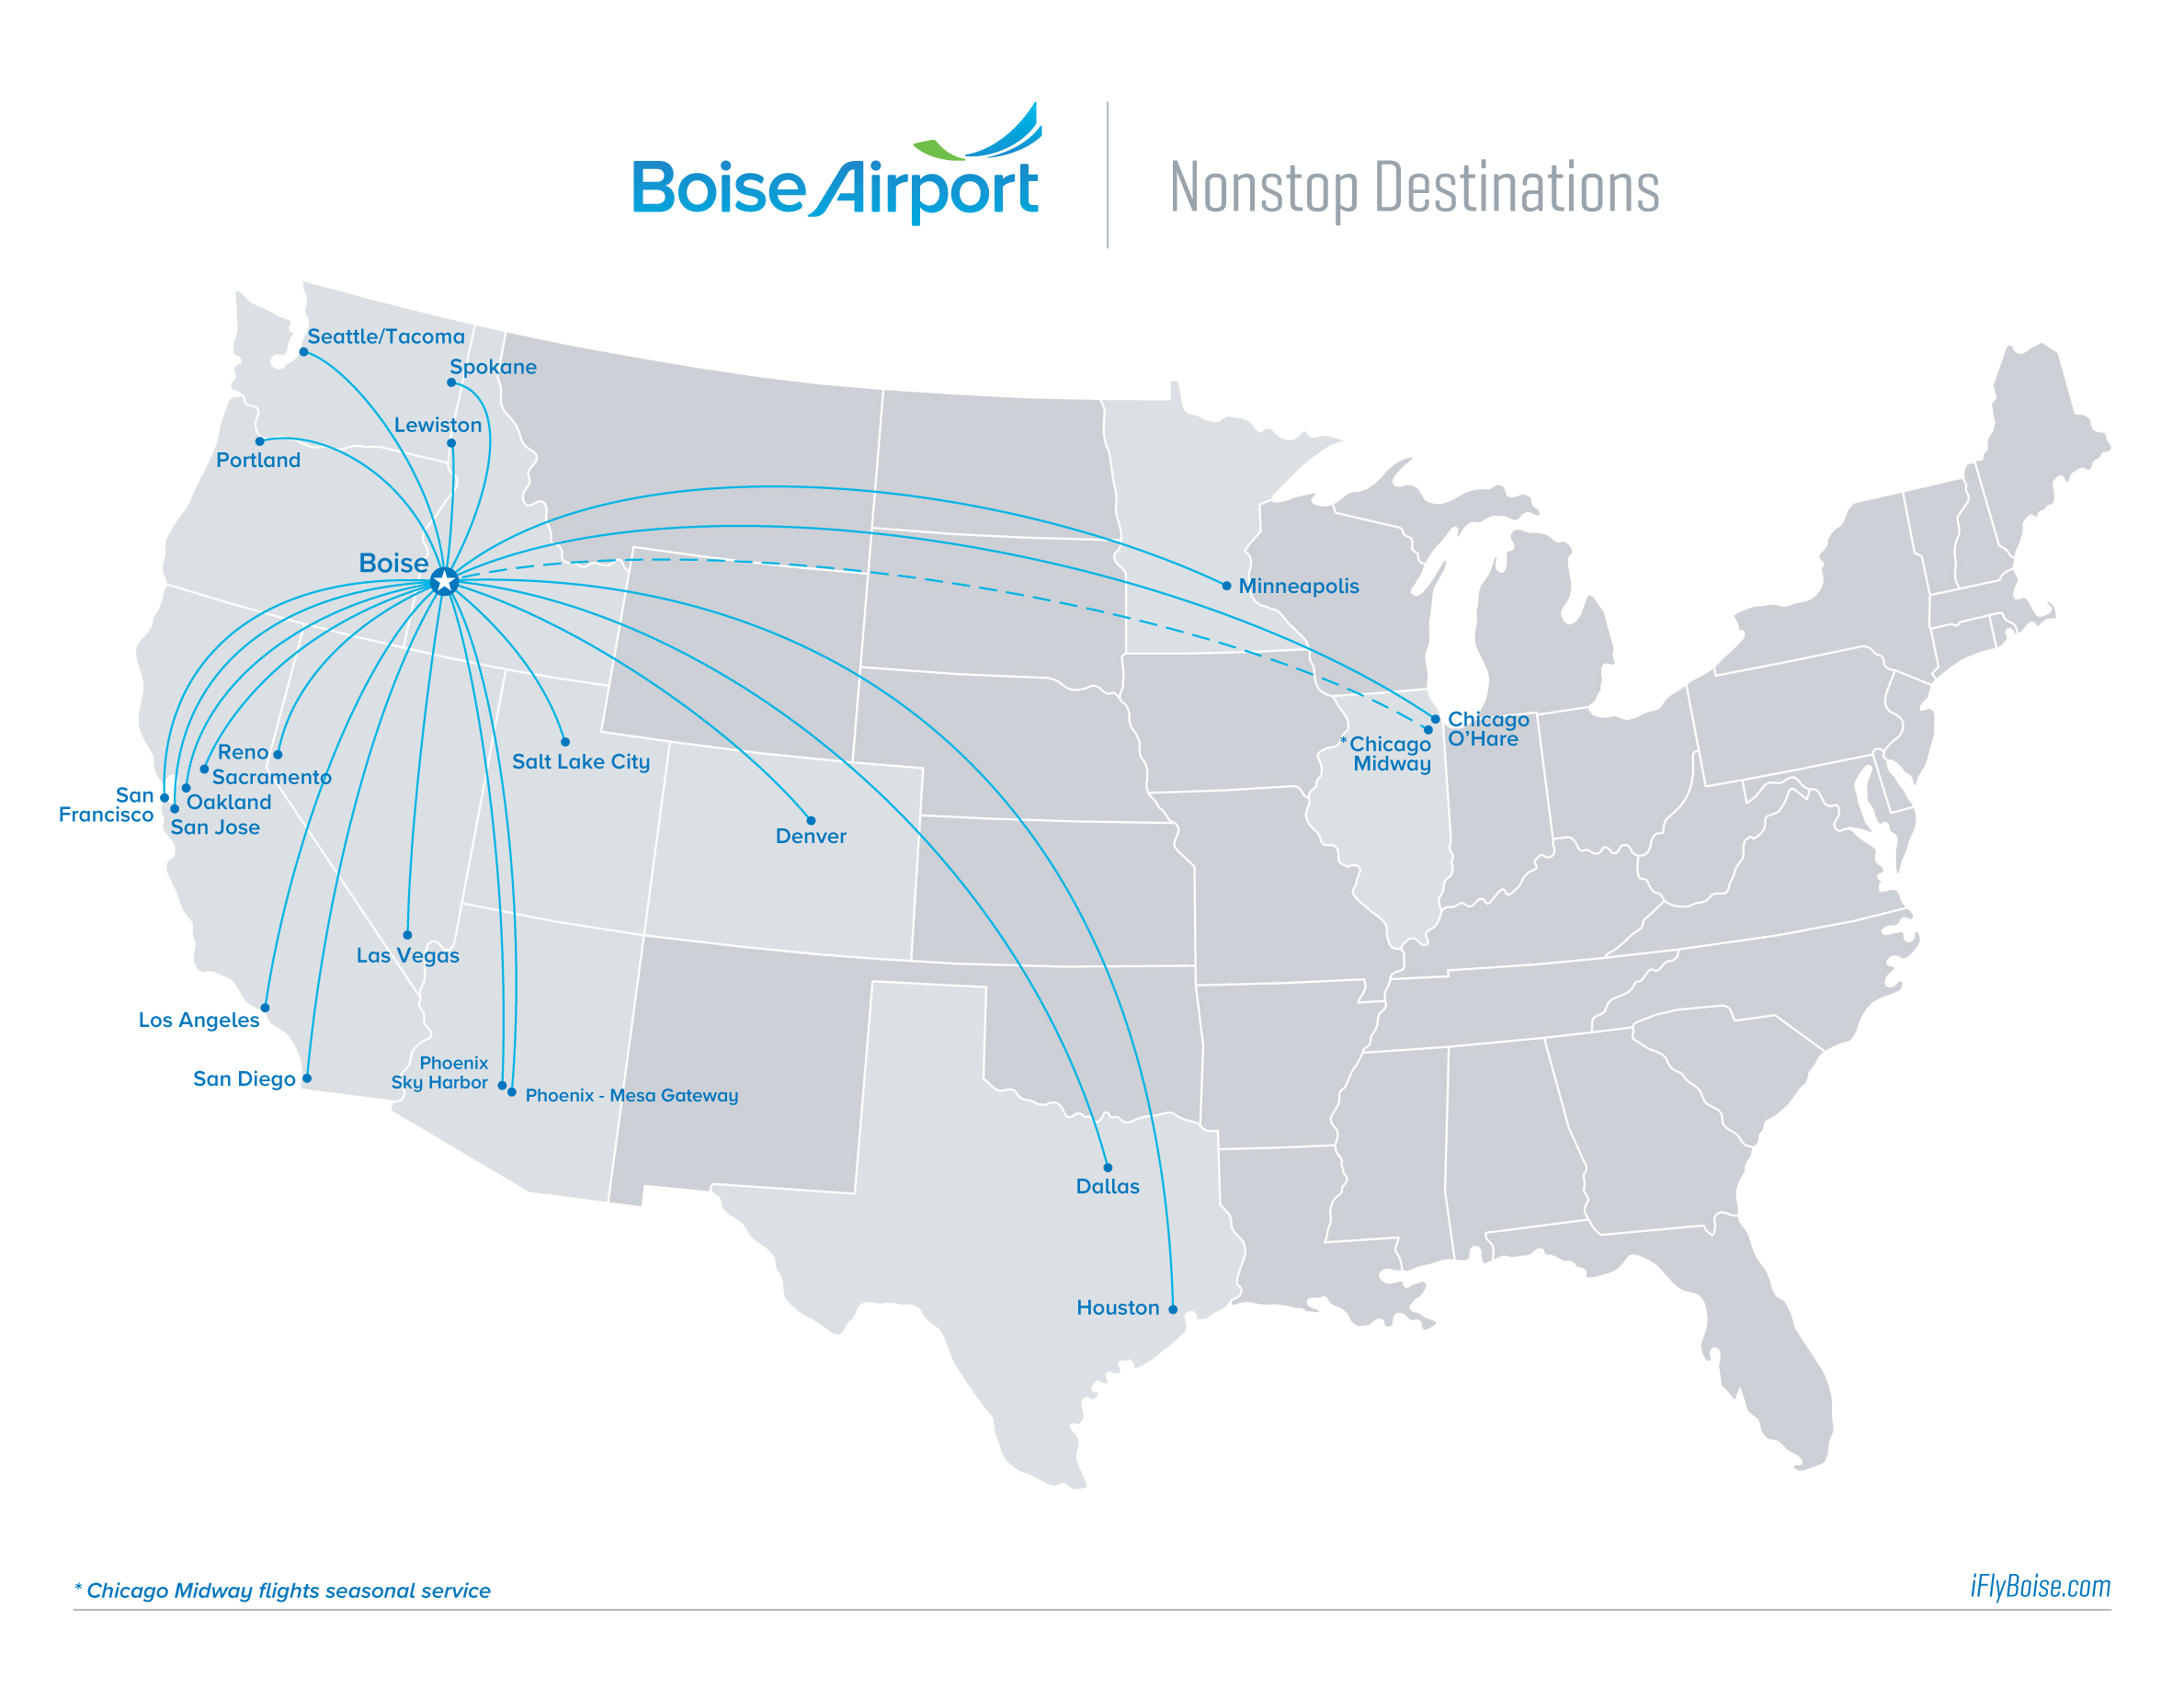 Nonstop Destinations City of Boise